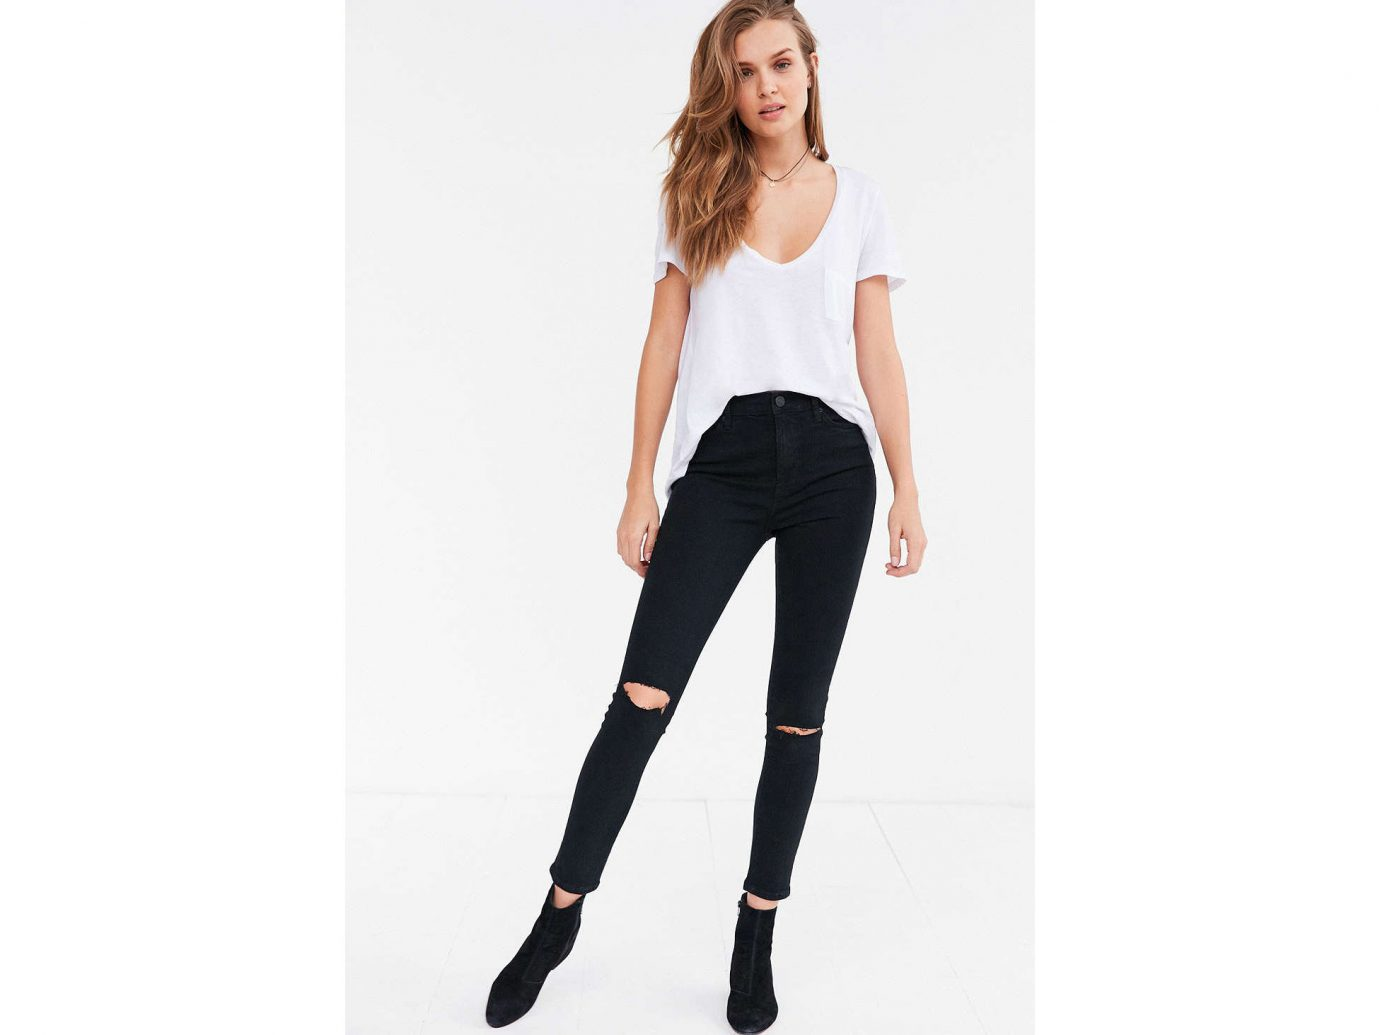 Style + Design clothing jeans person waist shoulder leggings fashion model joint tights trousers trouser neck abdomen trunk human leg denim thigh posing